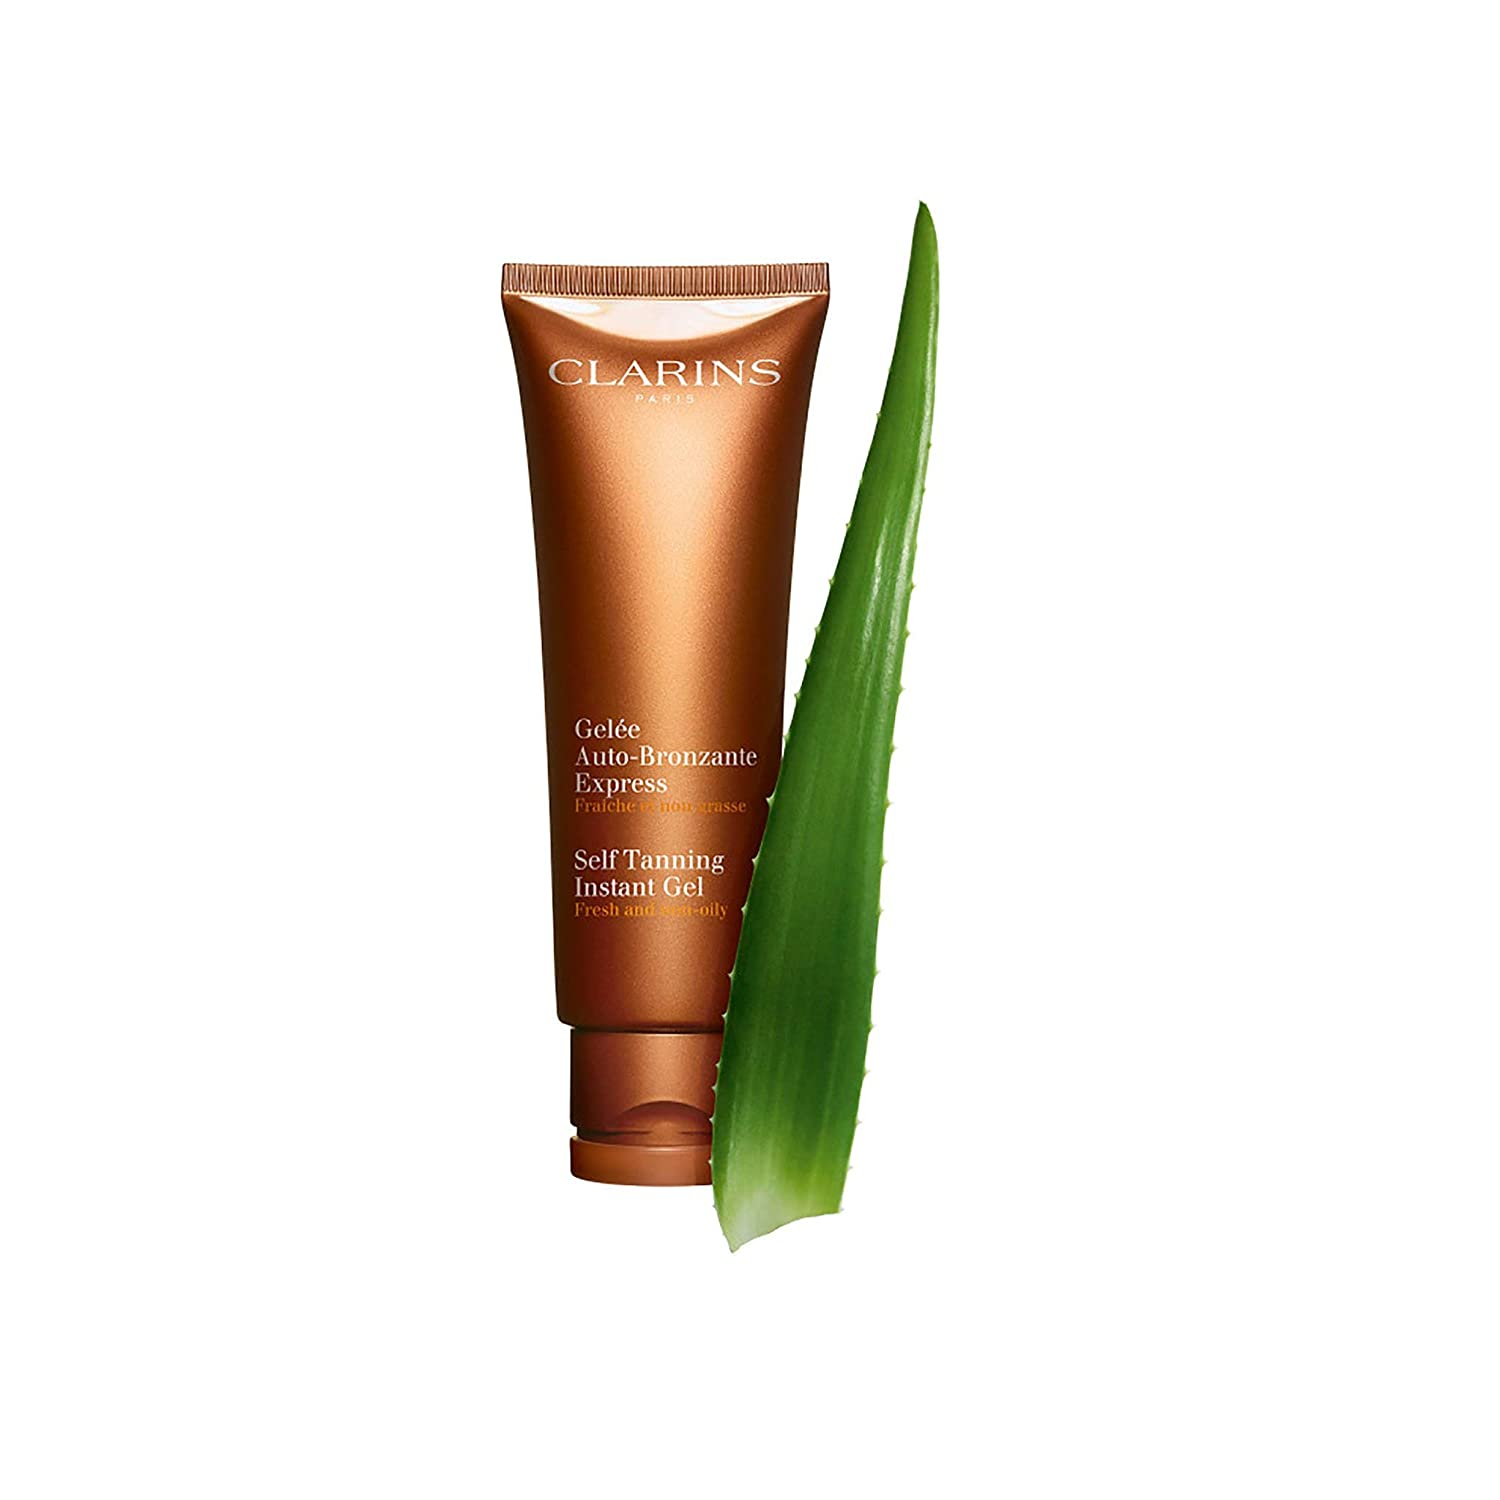 Clarins Self Tanning Instant Gel 4.5 oz